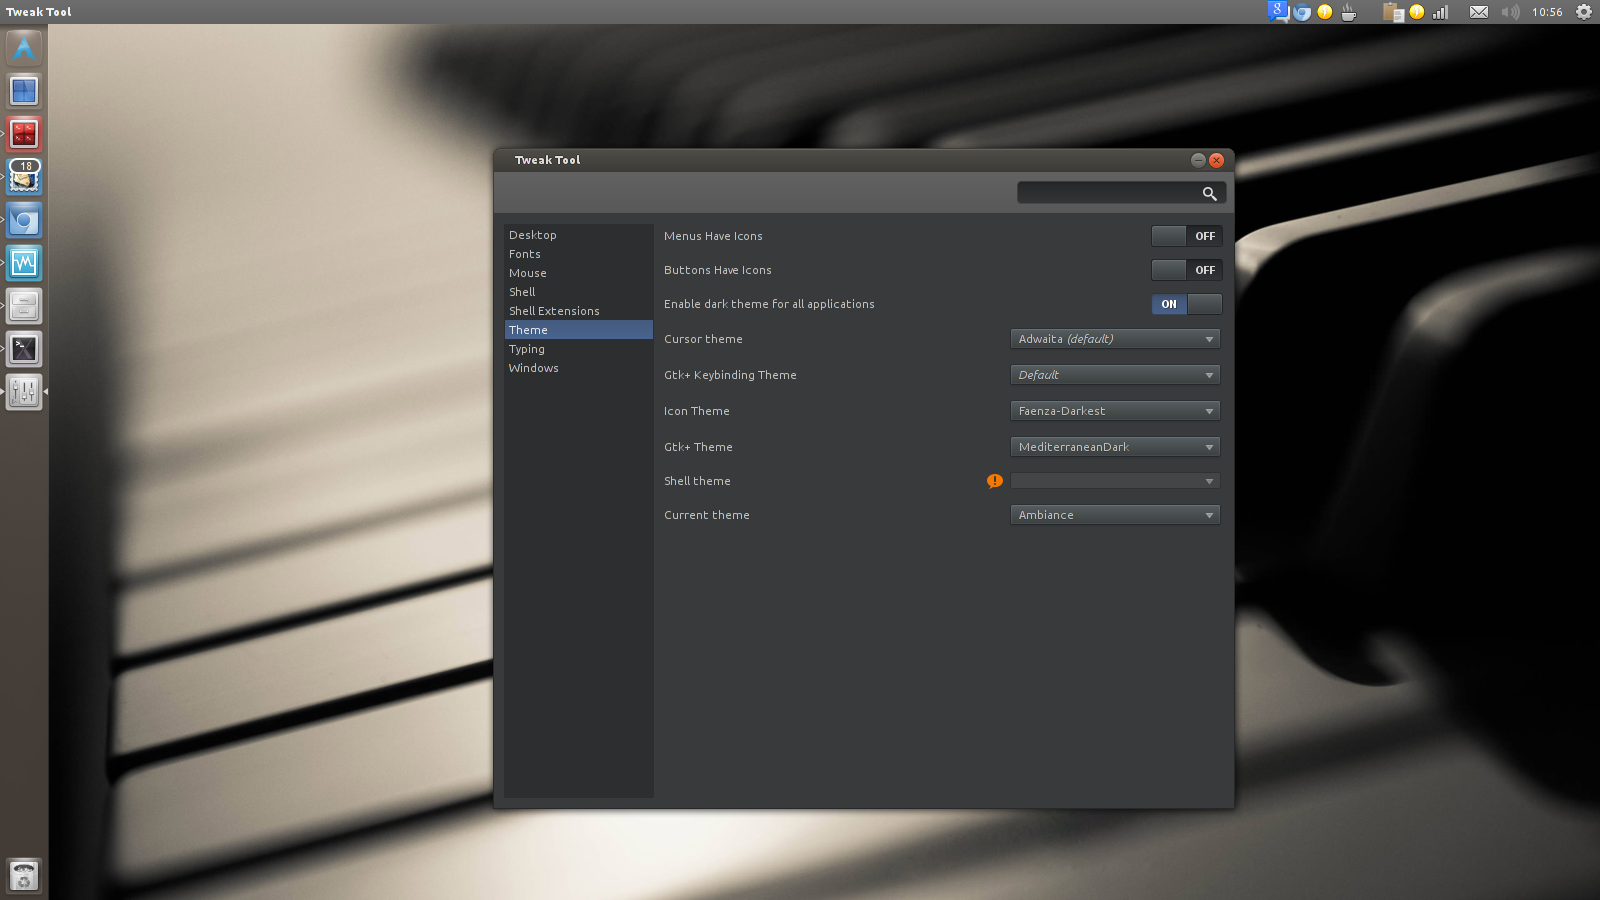 GTK theme settings